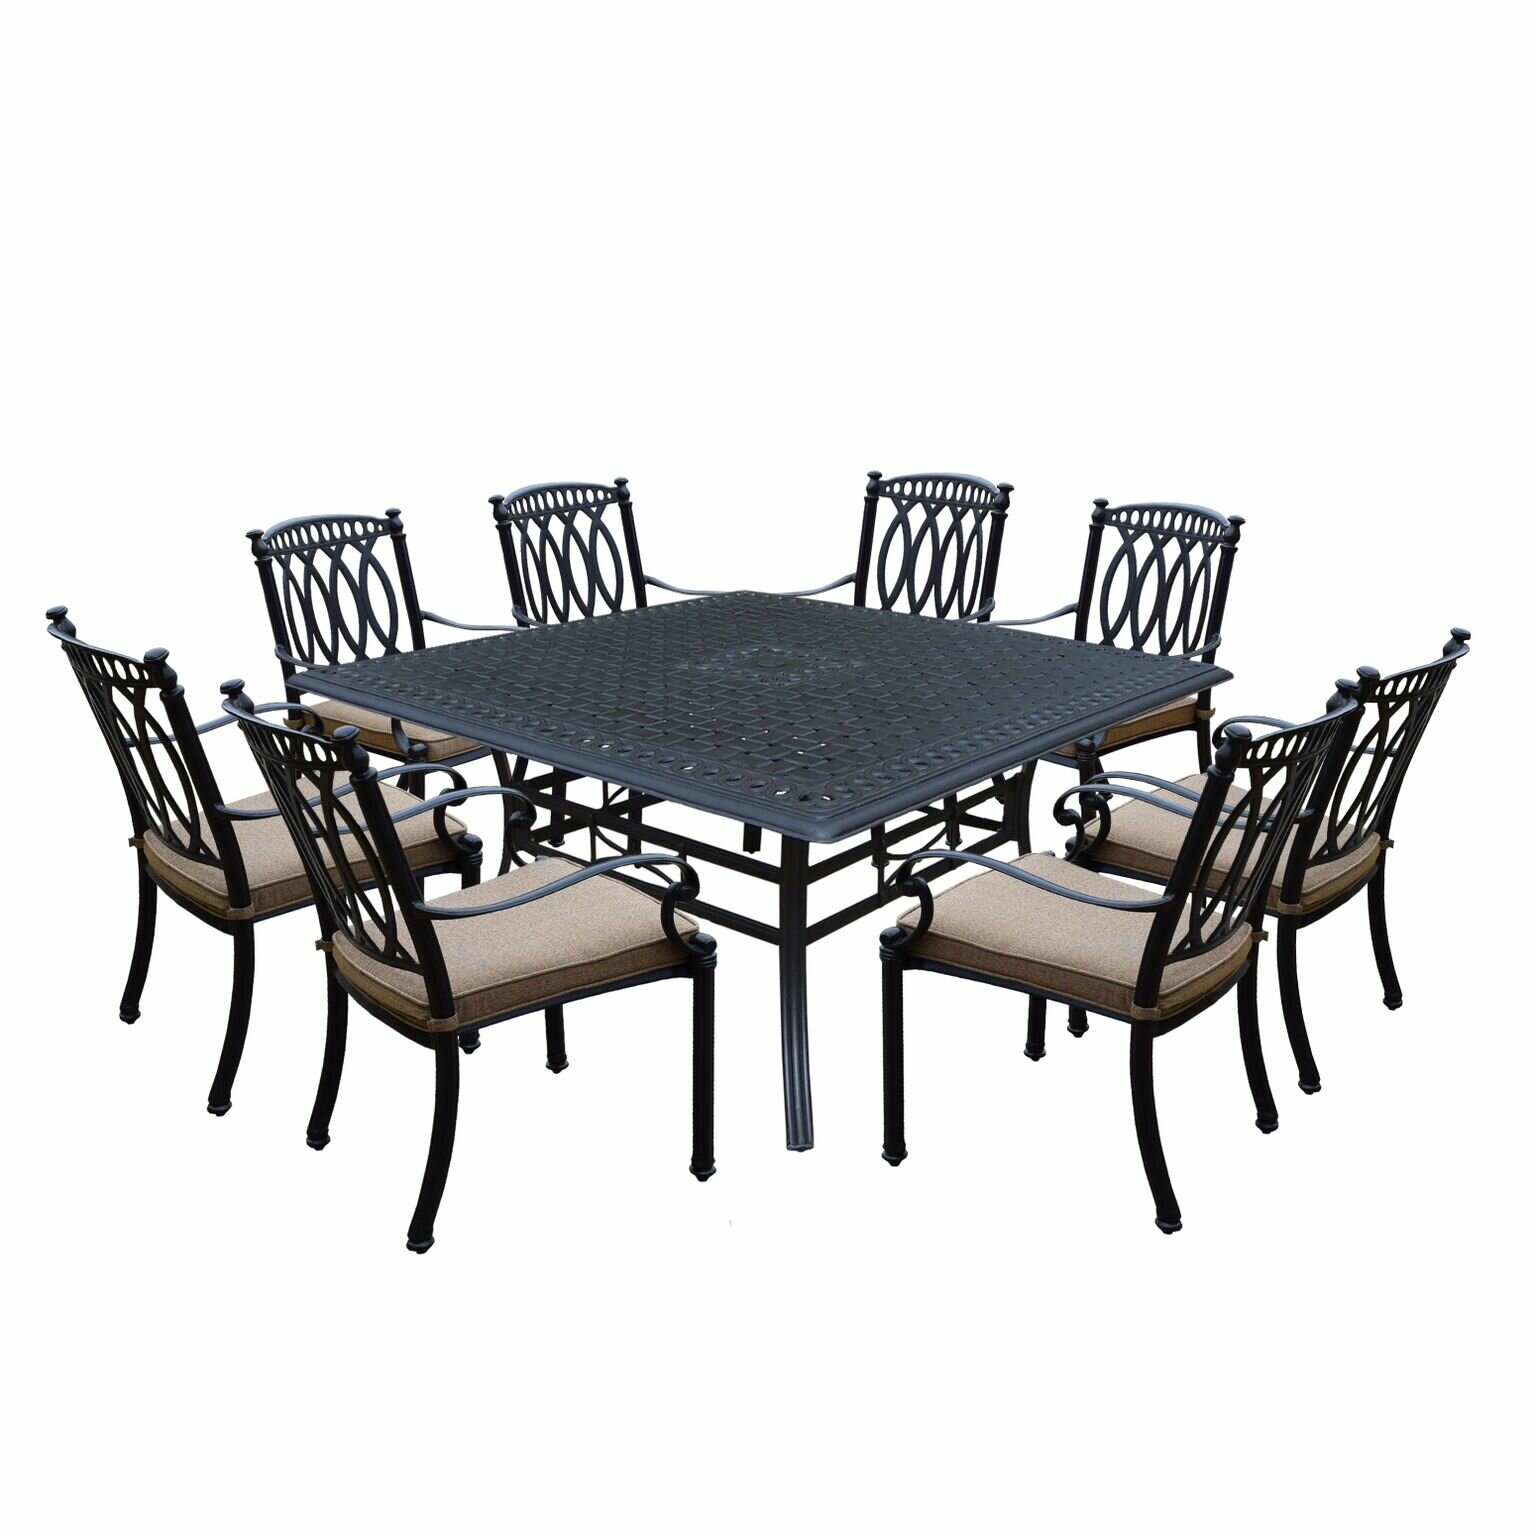 Darby Home Co Otsego 9 Piece Cast Aluminum Dining Set With Cushions Wayfair